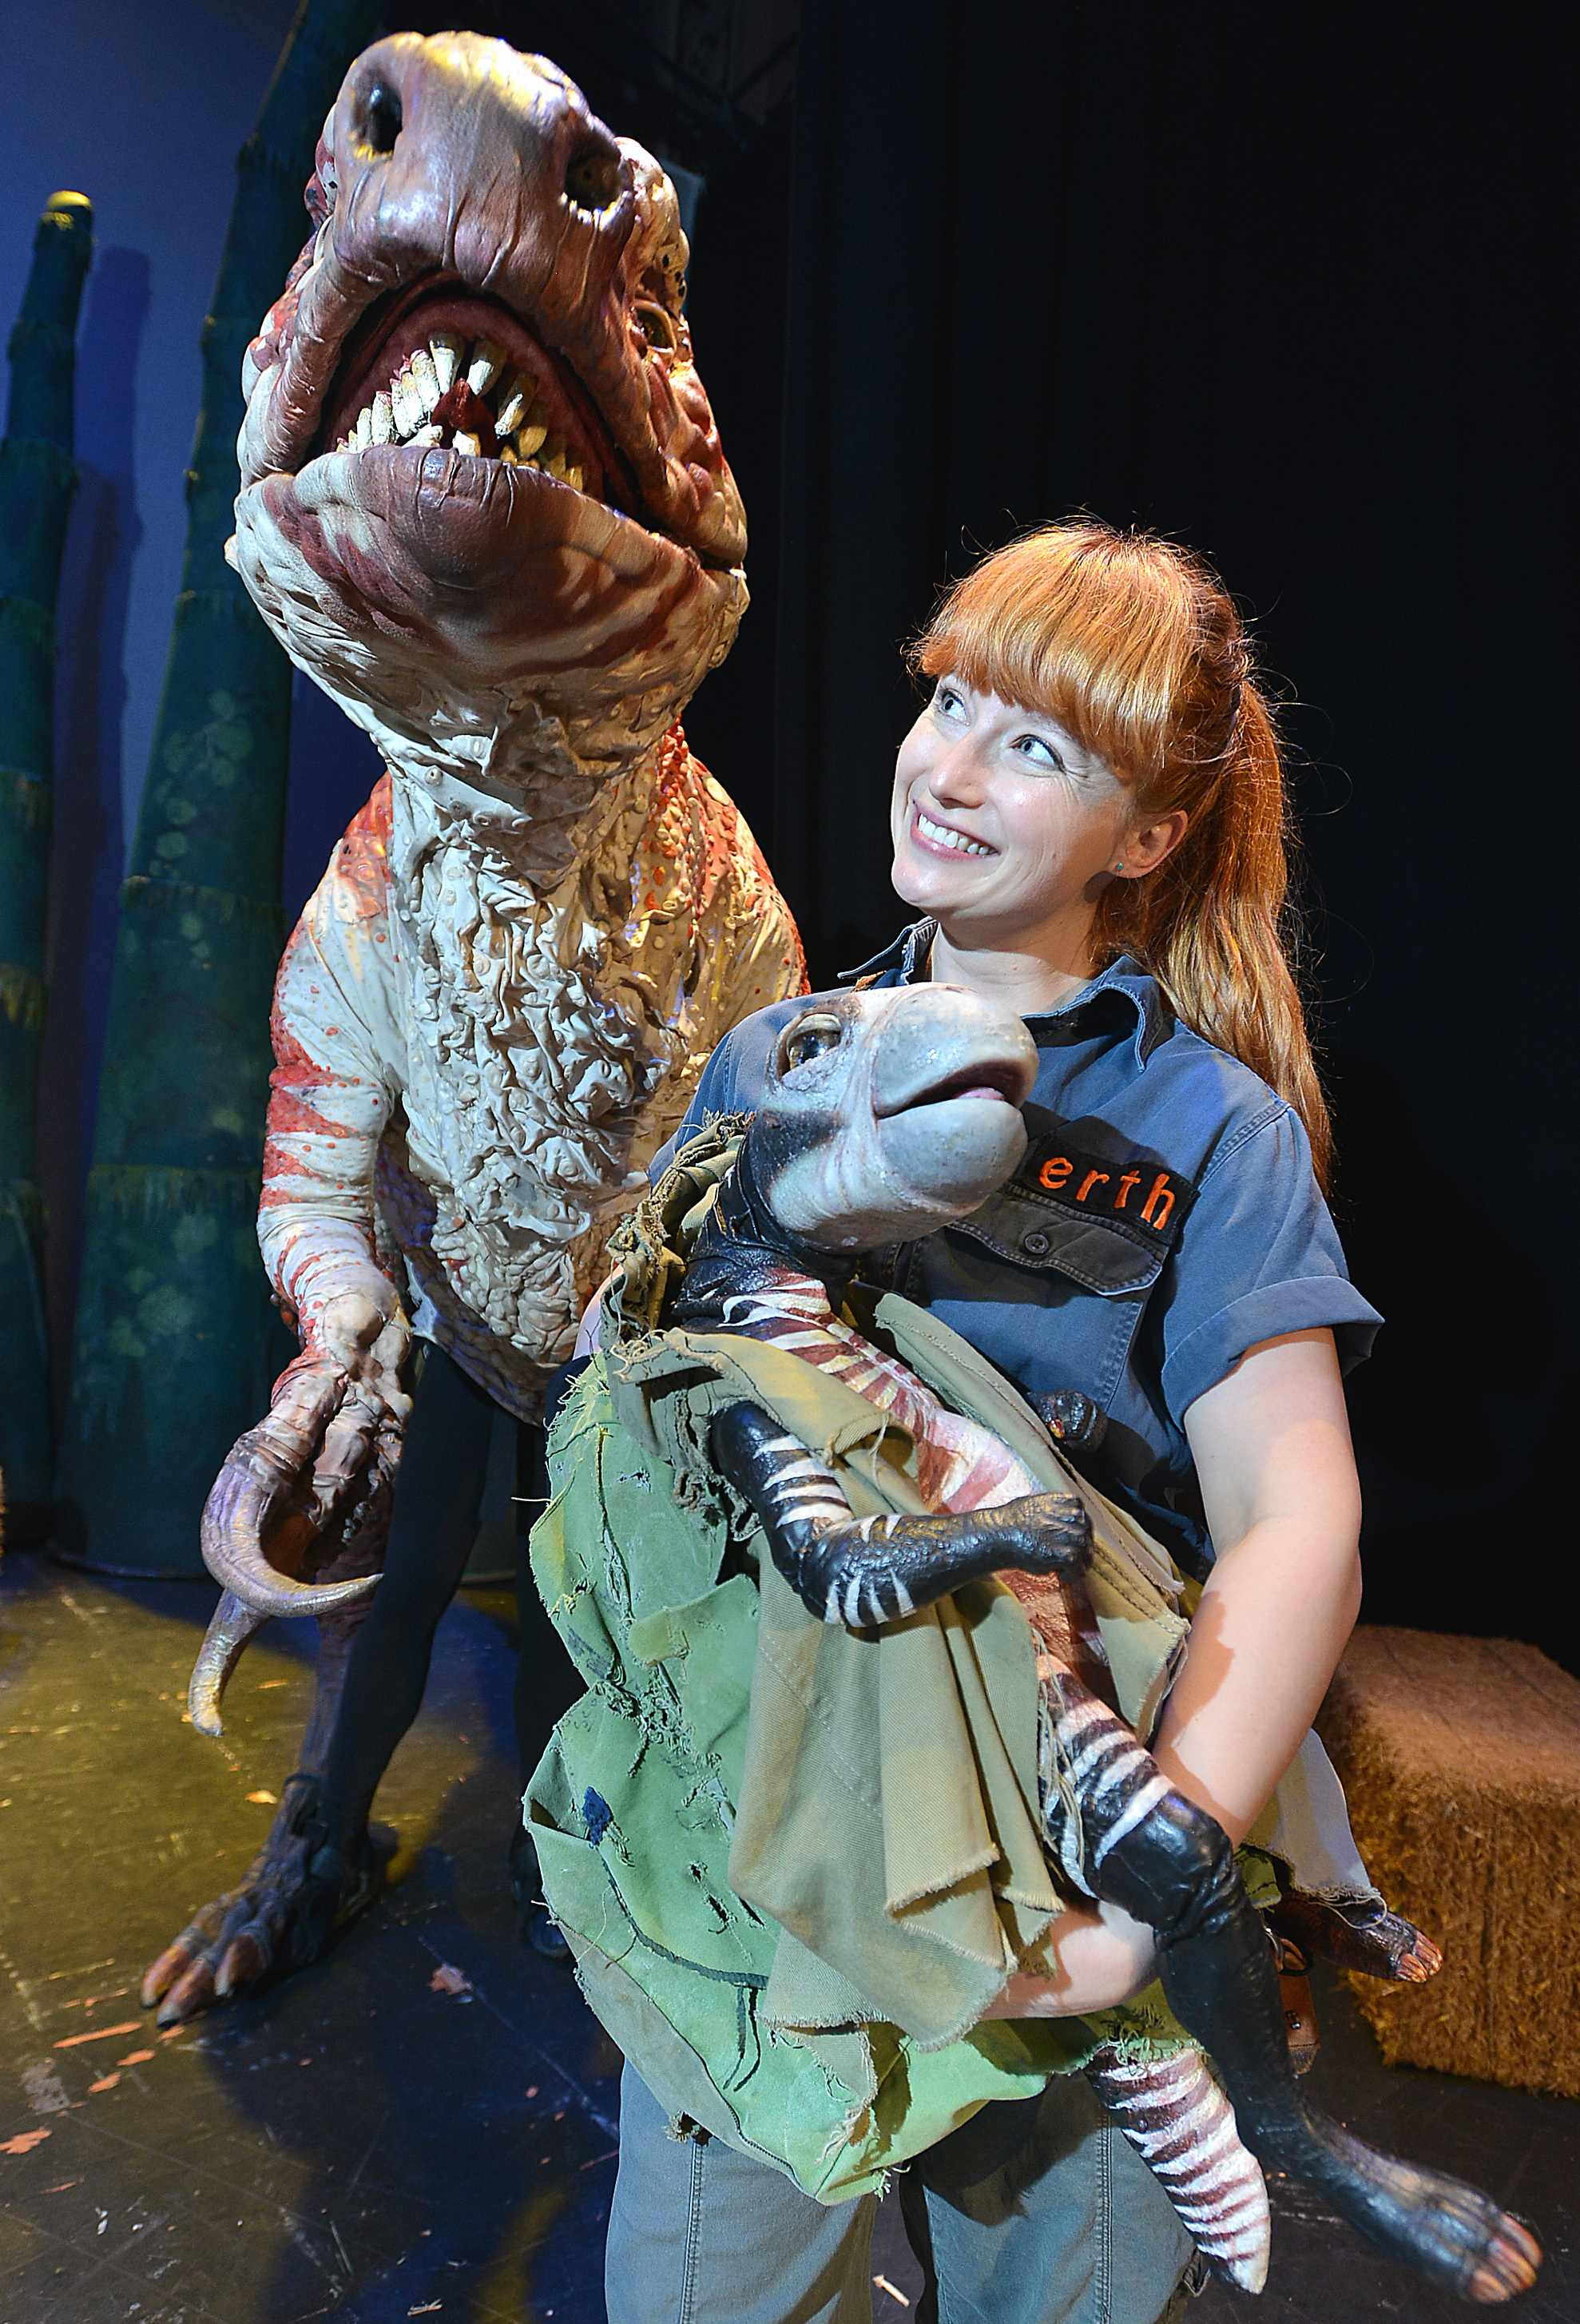 SHOW: Zoo keeper Lindsey Chaplin with some of the creatures from Erth's Dinosaur Zoo which is visiting St George's Hall in Bradford